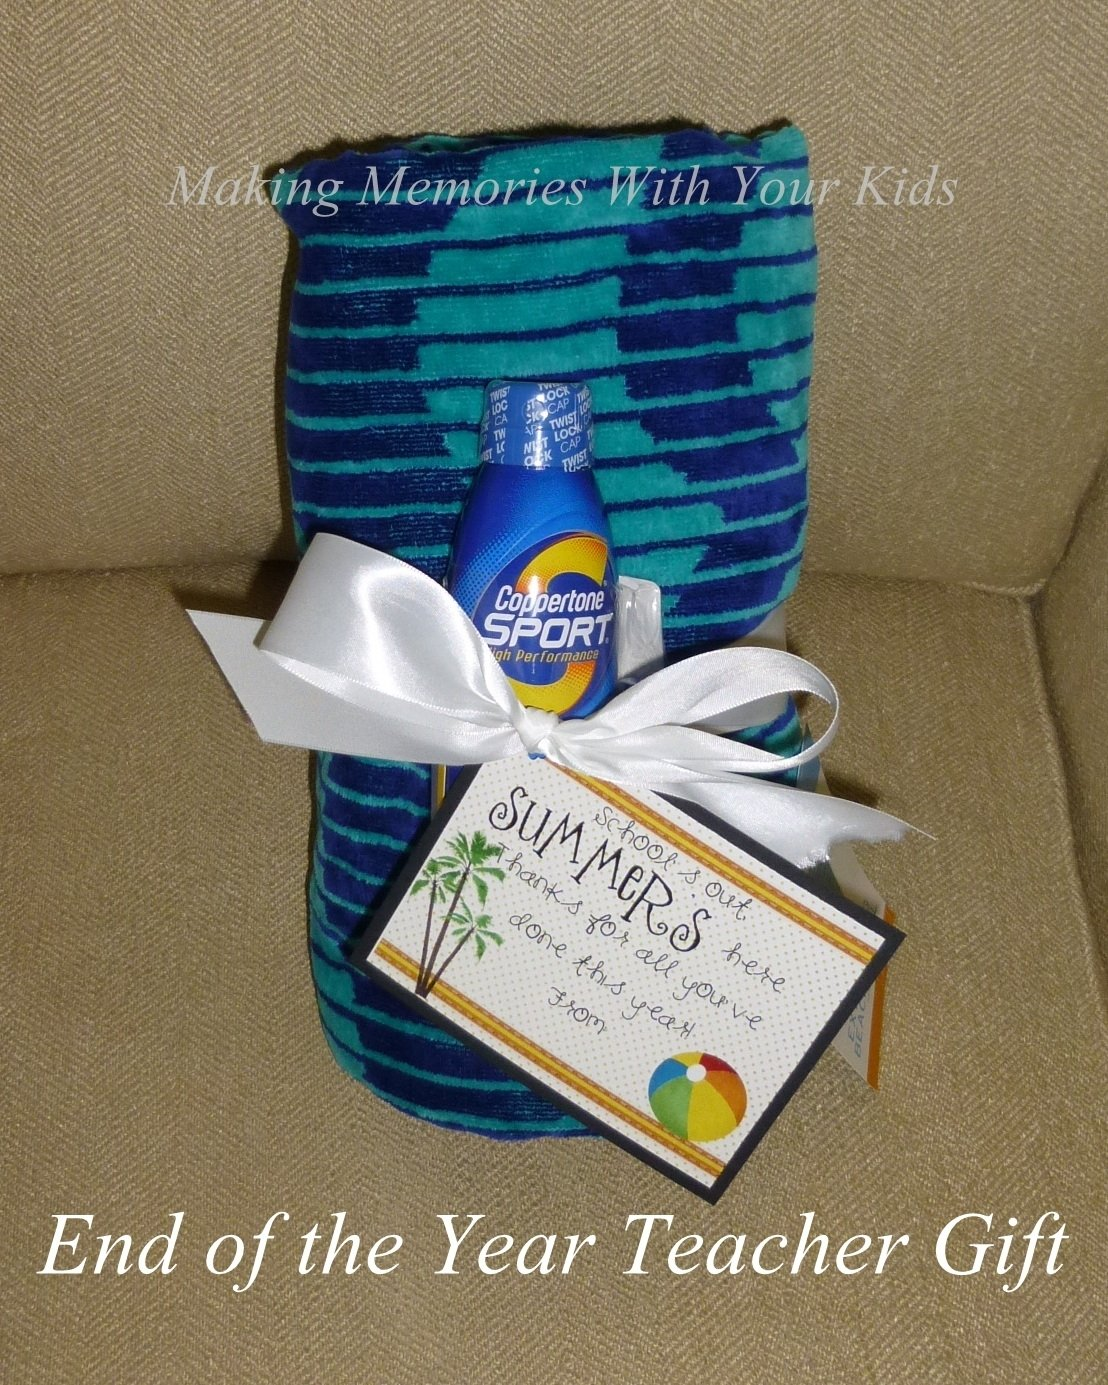 10 Pretty End Of The Year Gift Ideas For Teachers end of the year teacher gift idea making memories with your kids 3